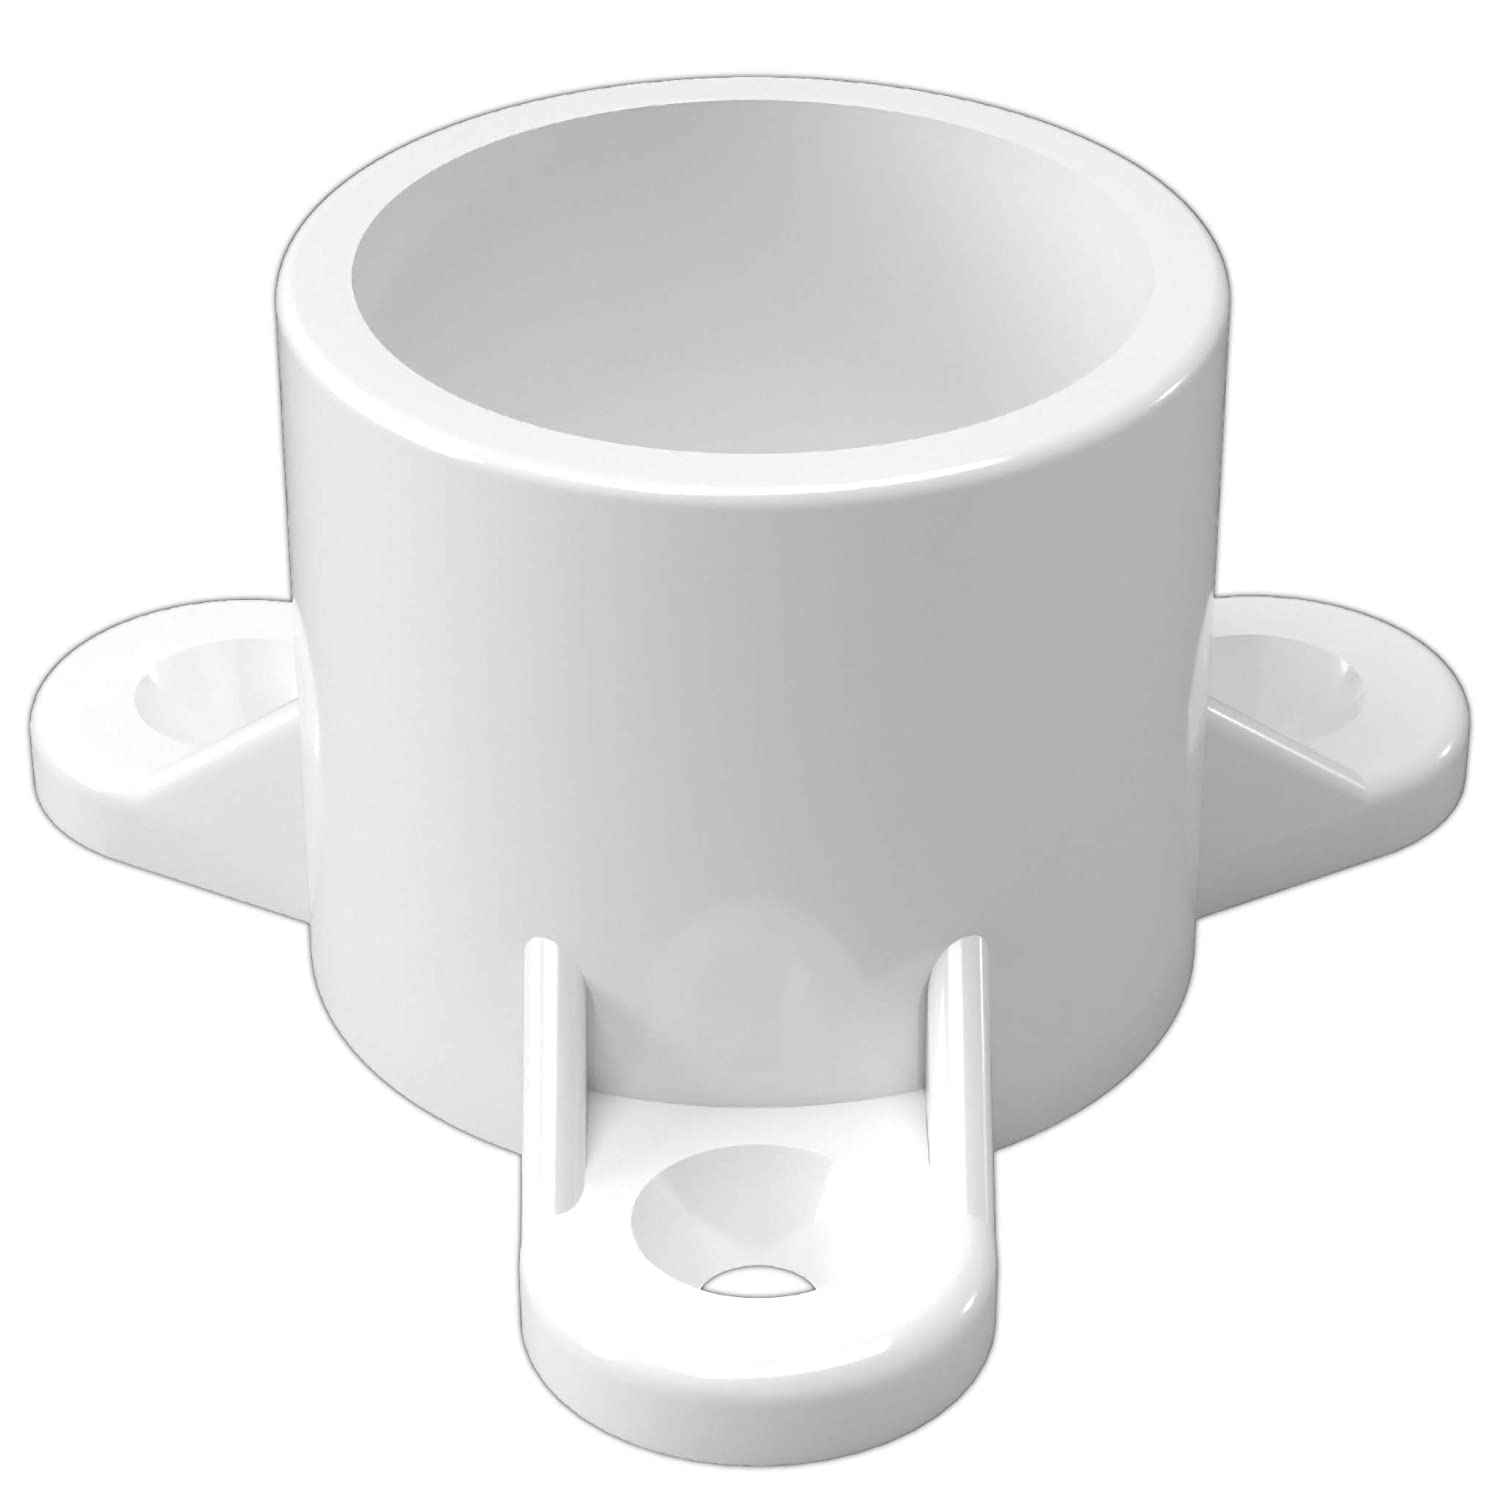 "FORMUFIT F001ECT-WH-10 PVC Table Cap, Furniture Grade, 1"" Size, White (Pack of 10)"